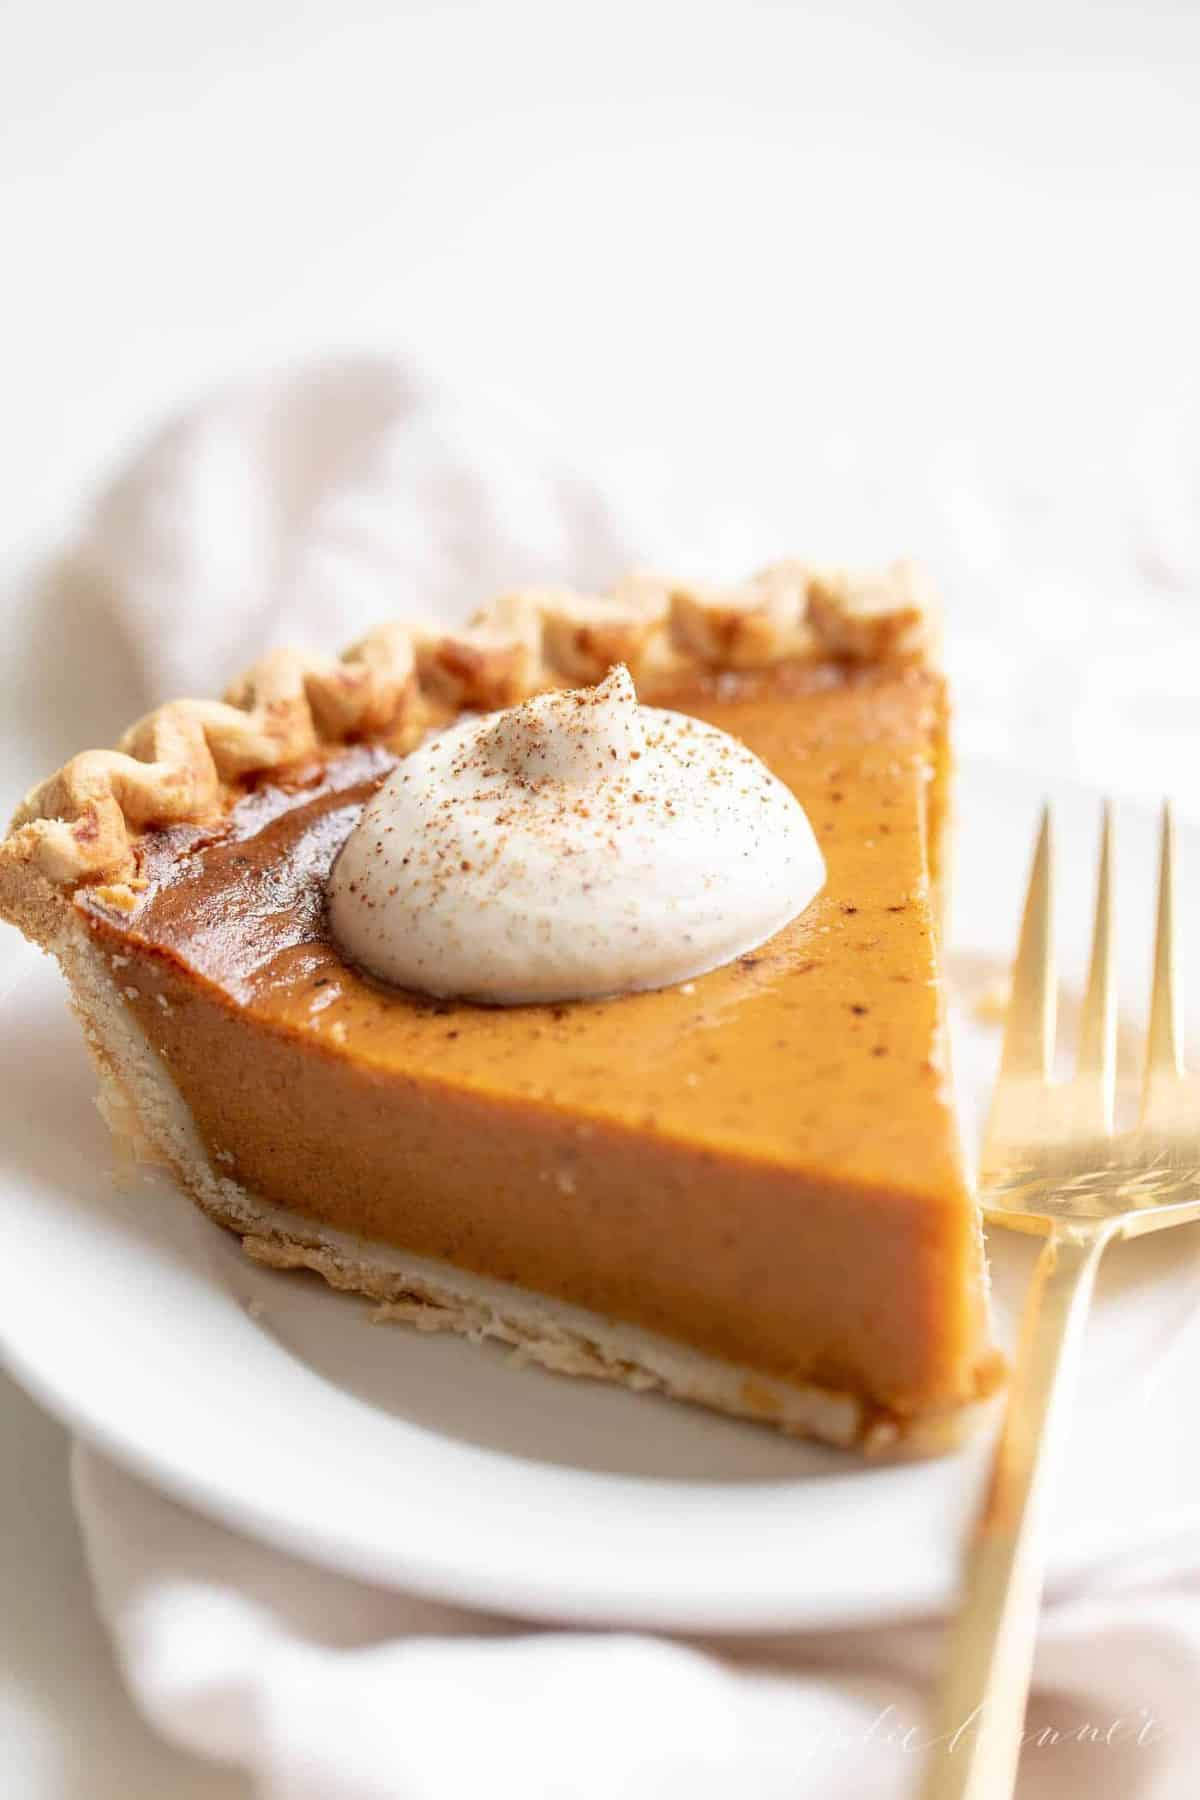 A slice of pumpkin pie with a dollop of eggnog whipped cream, placed on a white plate, gold fork to the side.